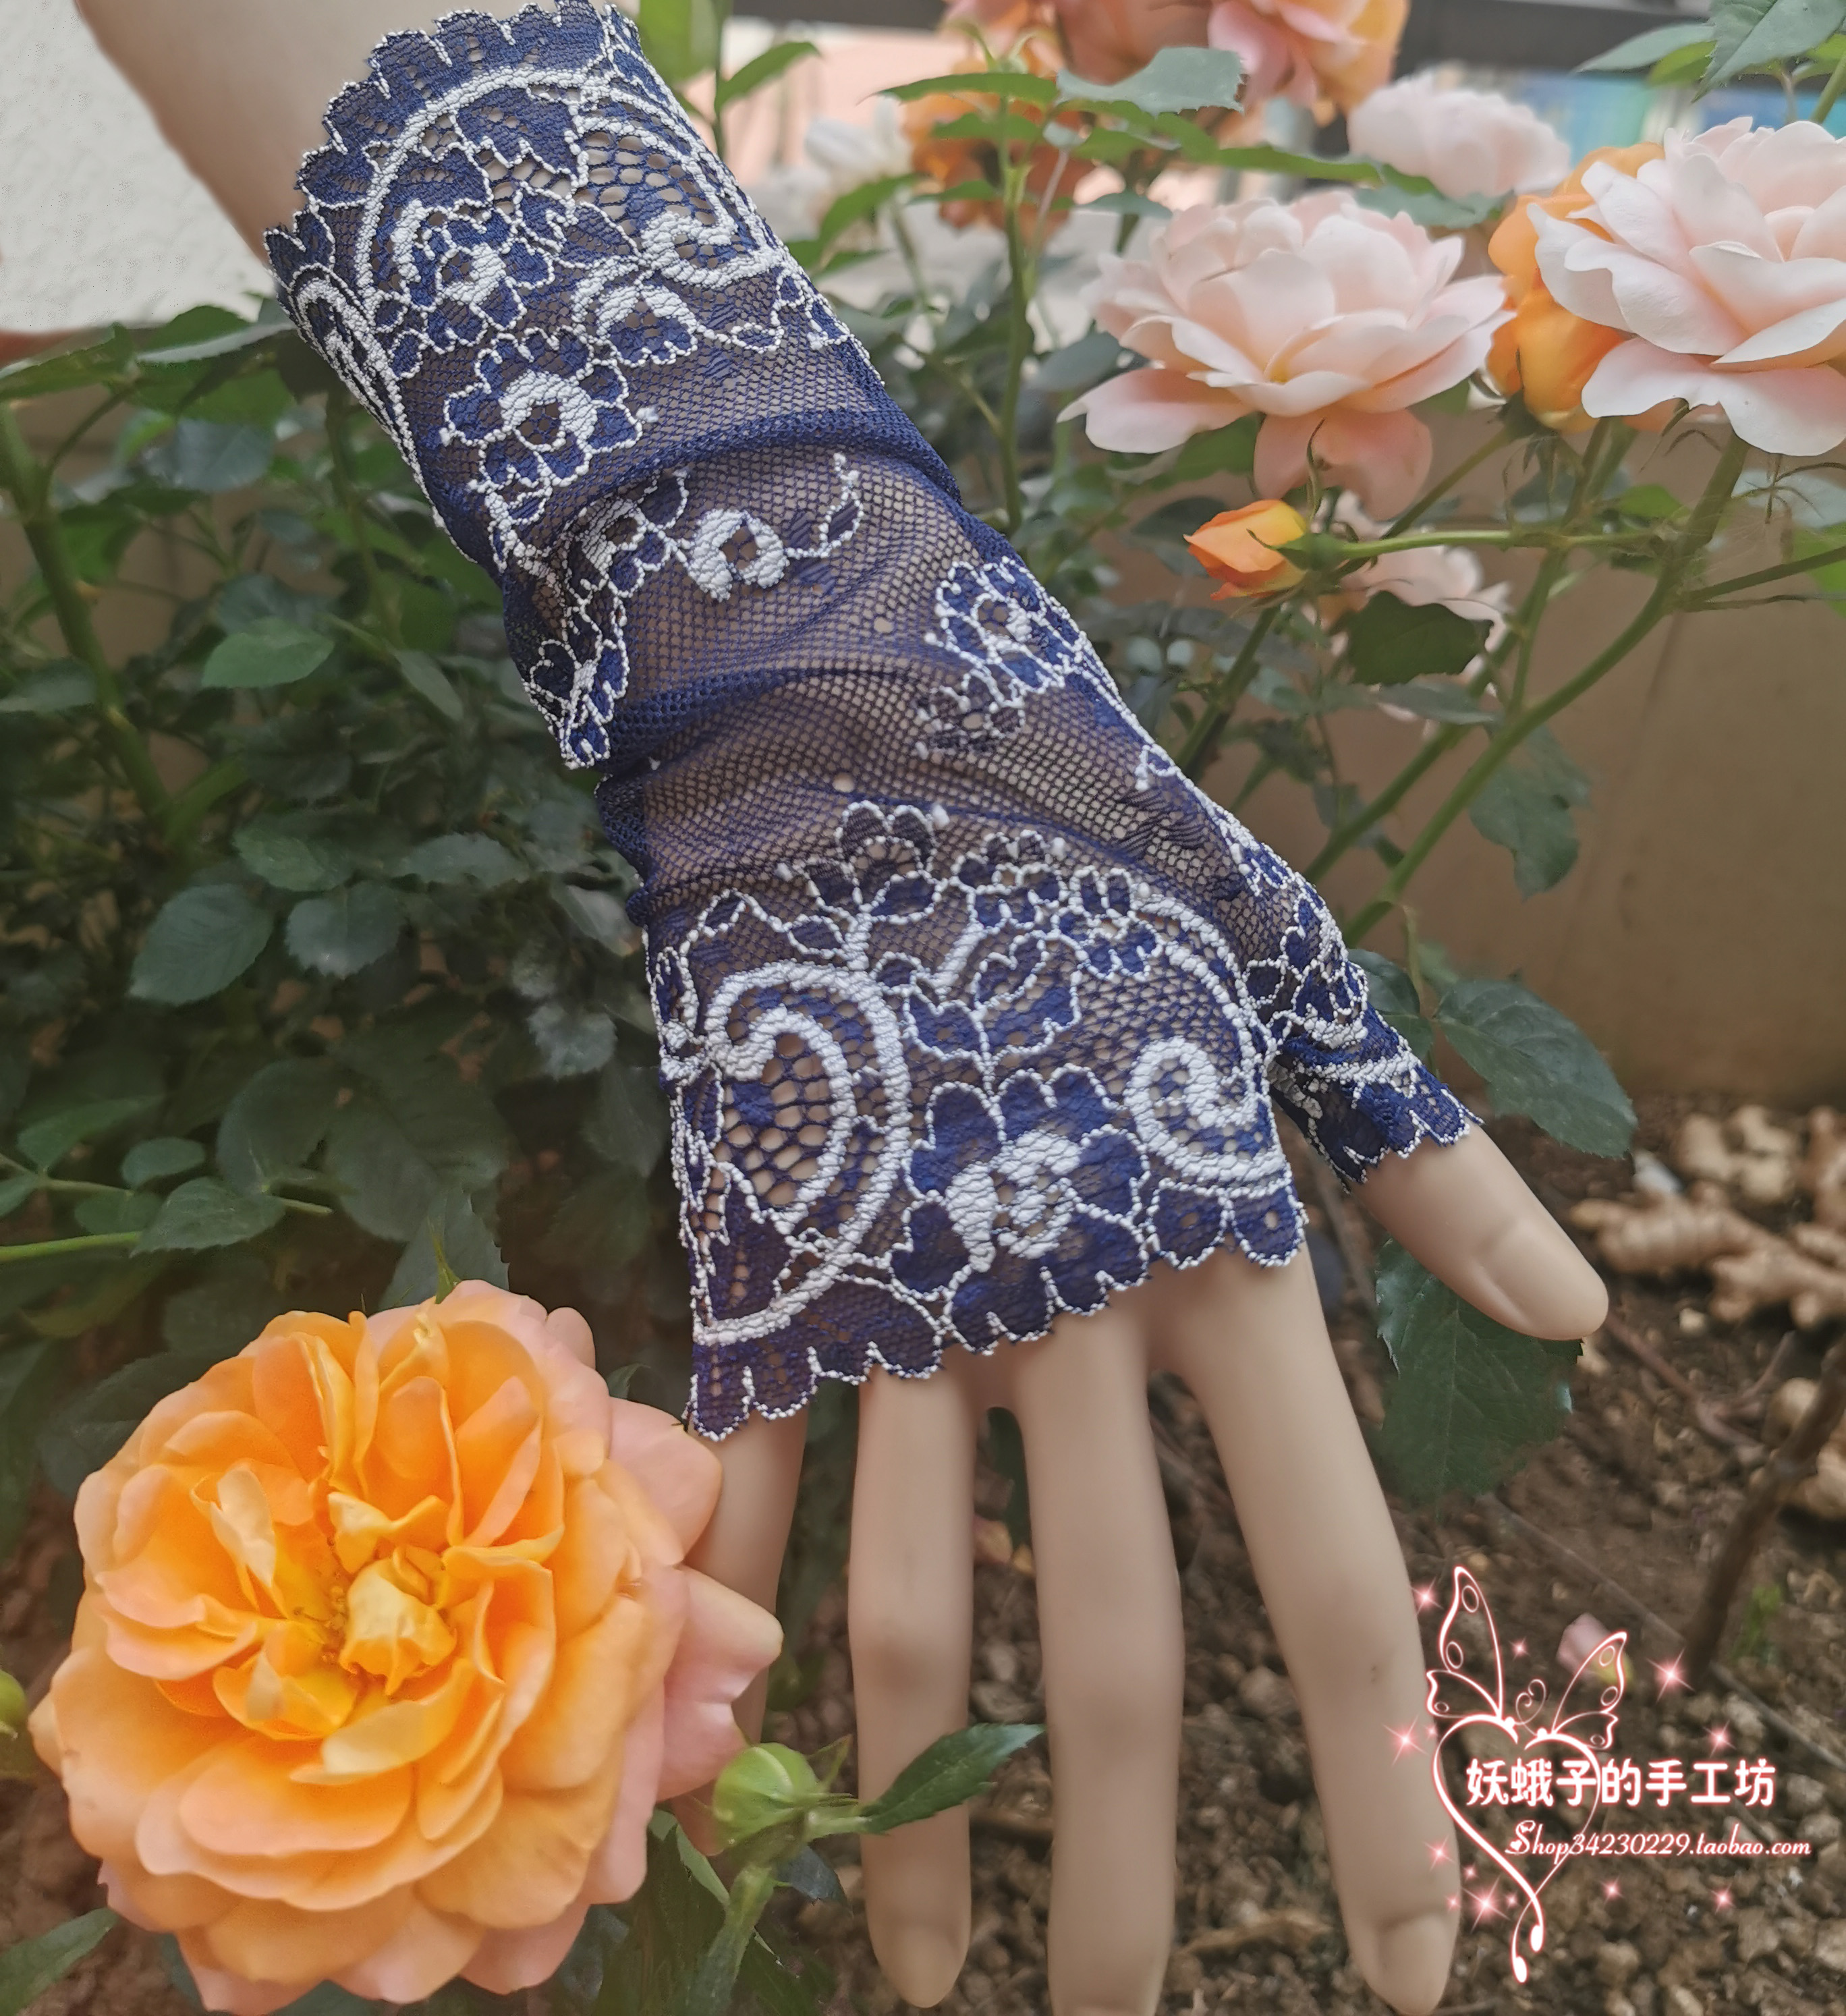 Demon moth one piece elastic ultra-thin blue and white porcelain lace half finger open finger gloves